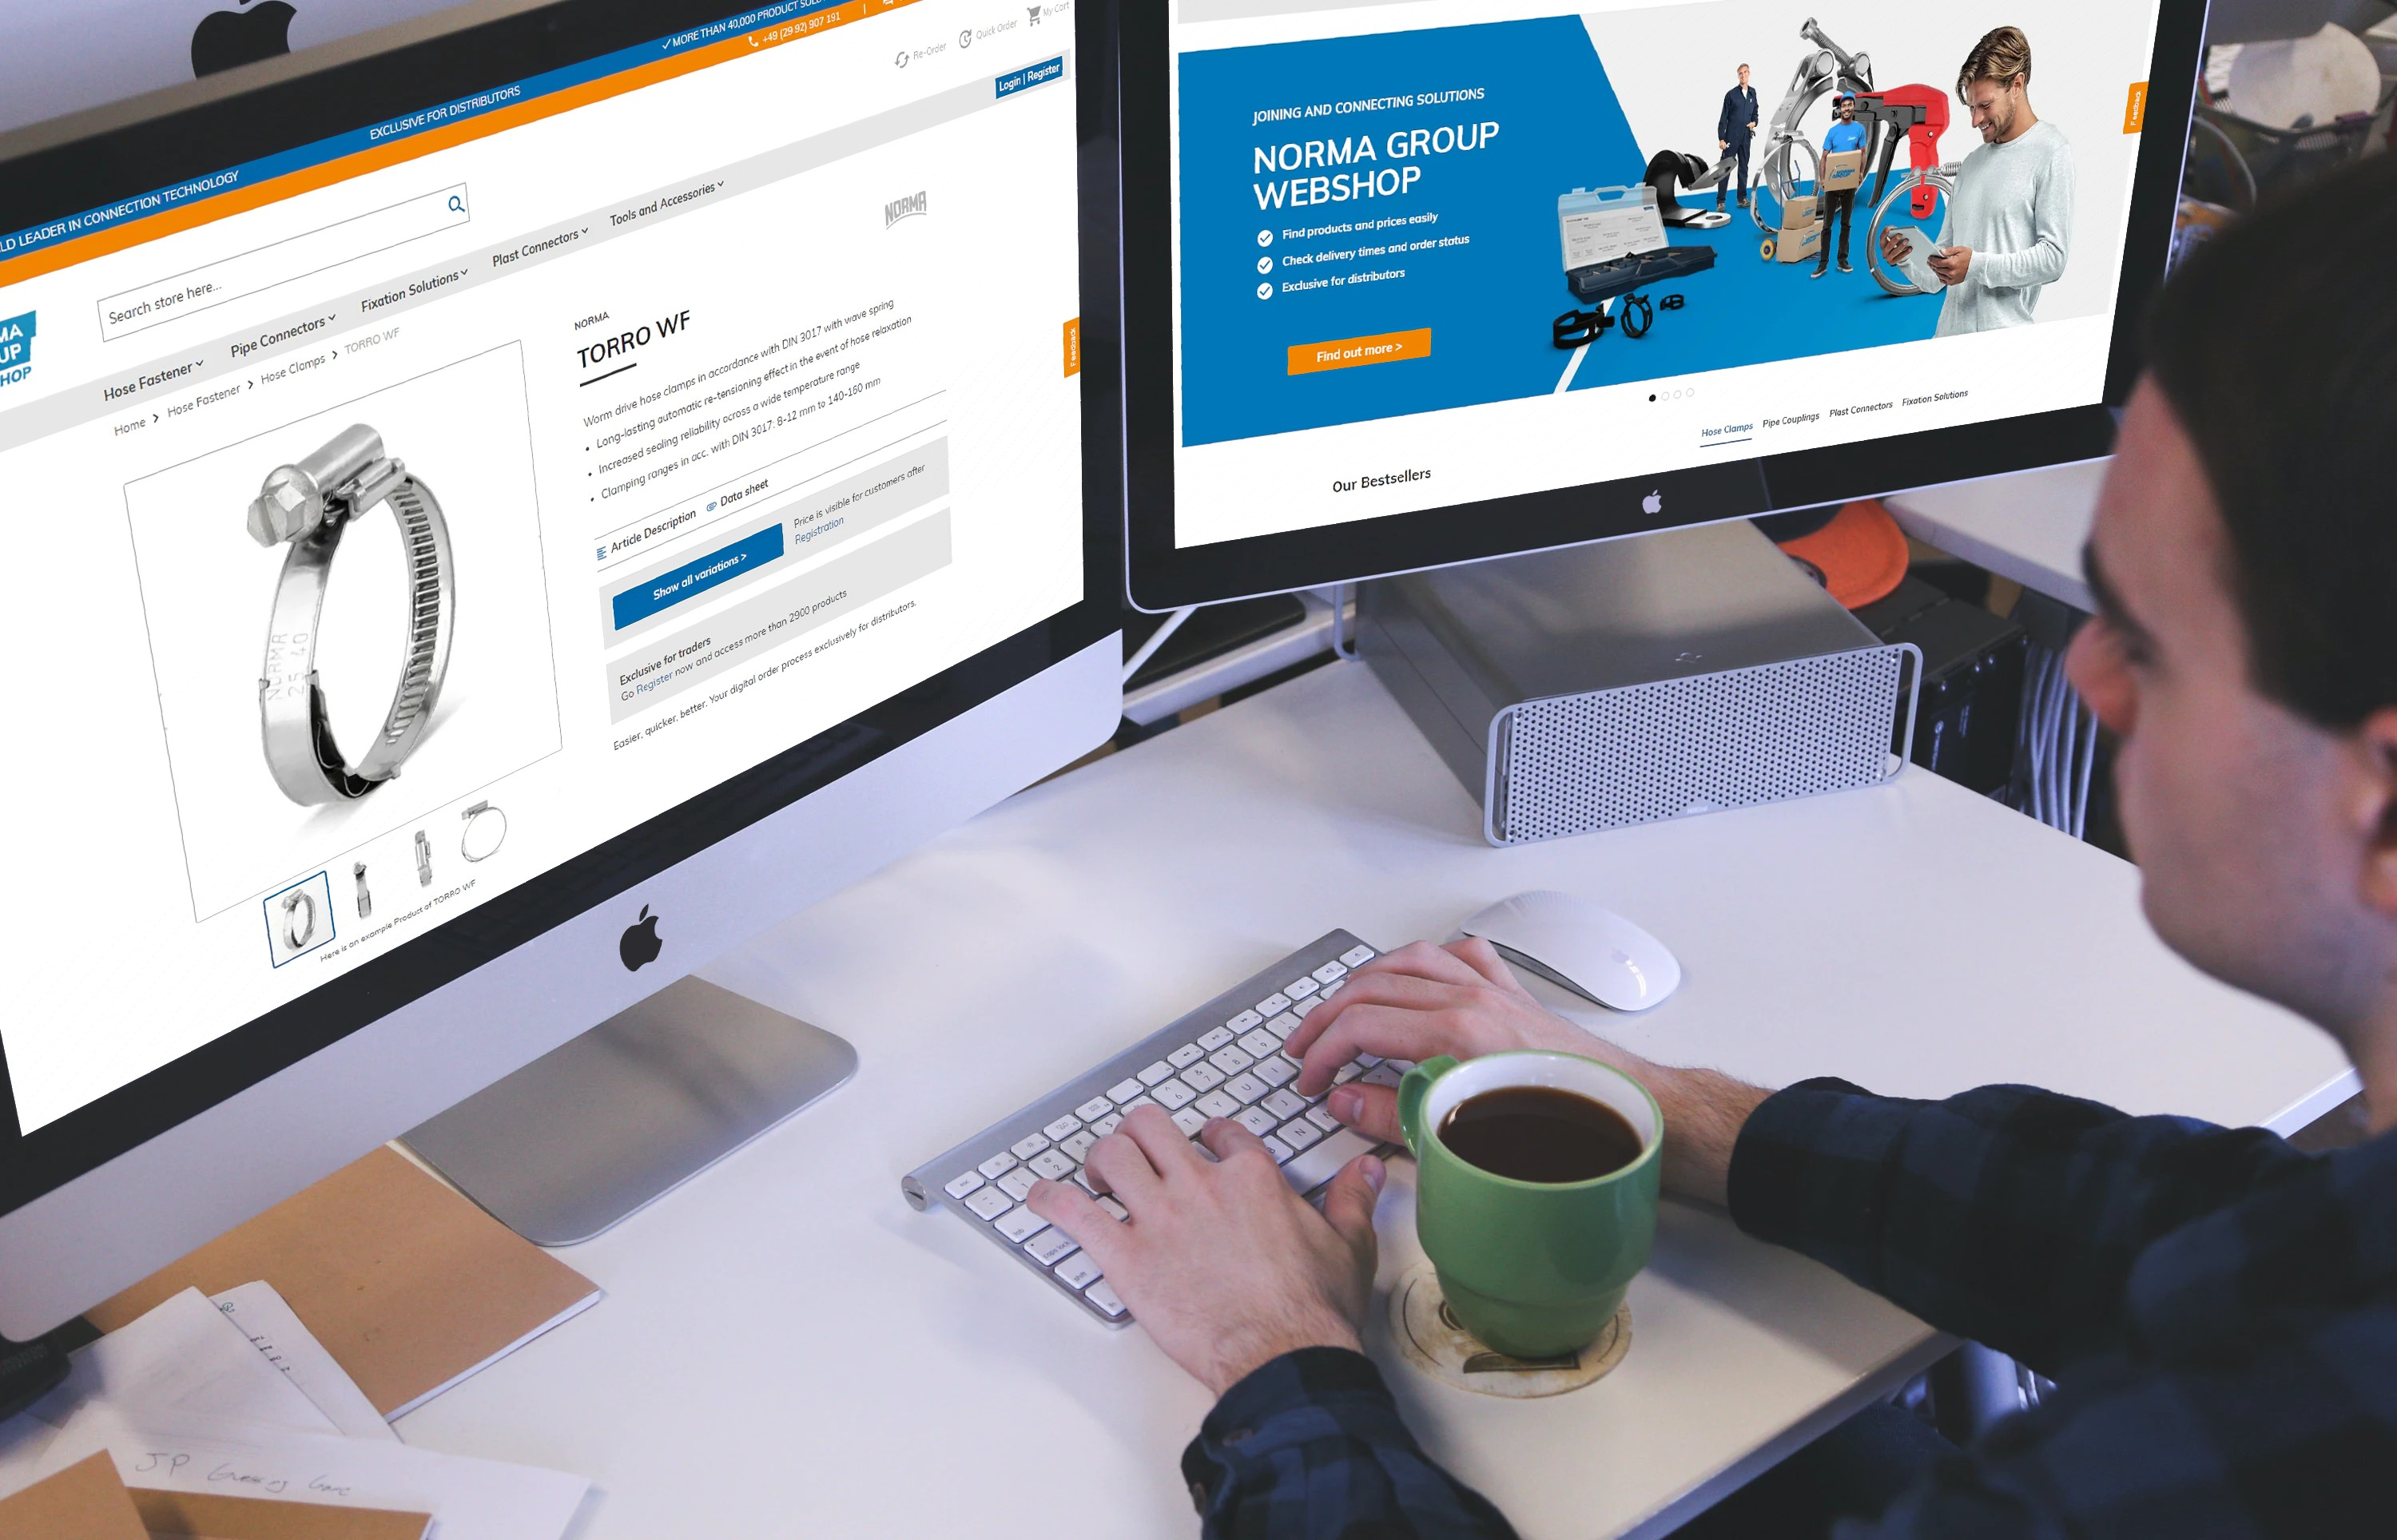 The NORMA Group Webshop offers arond 3,000 products (image: smartmockups.com)